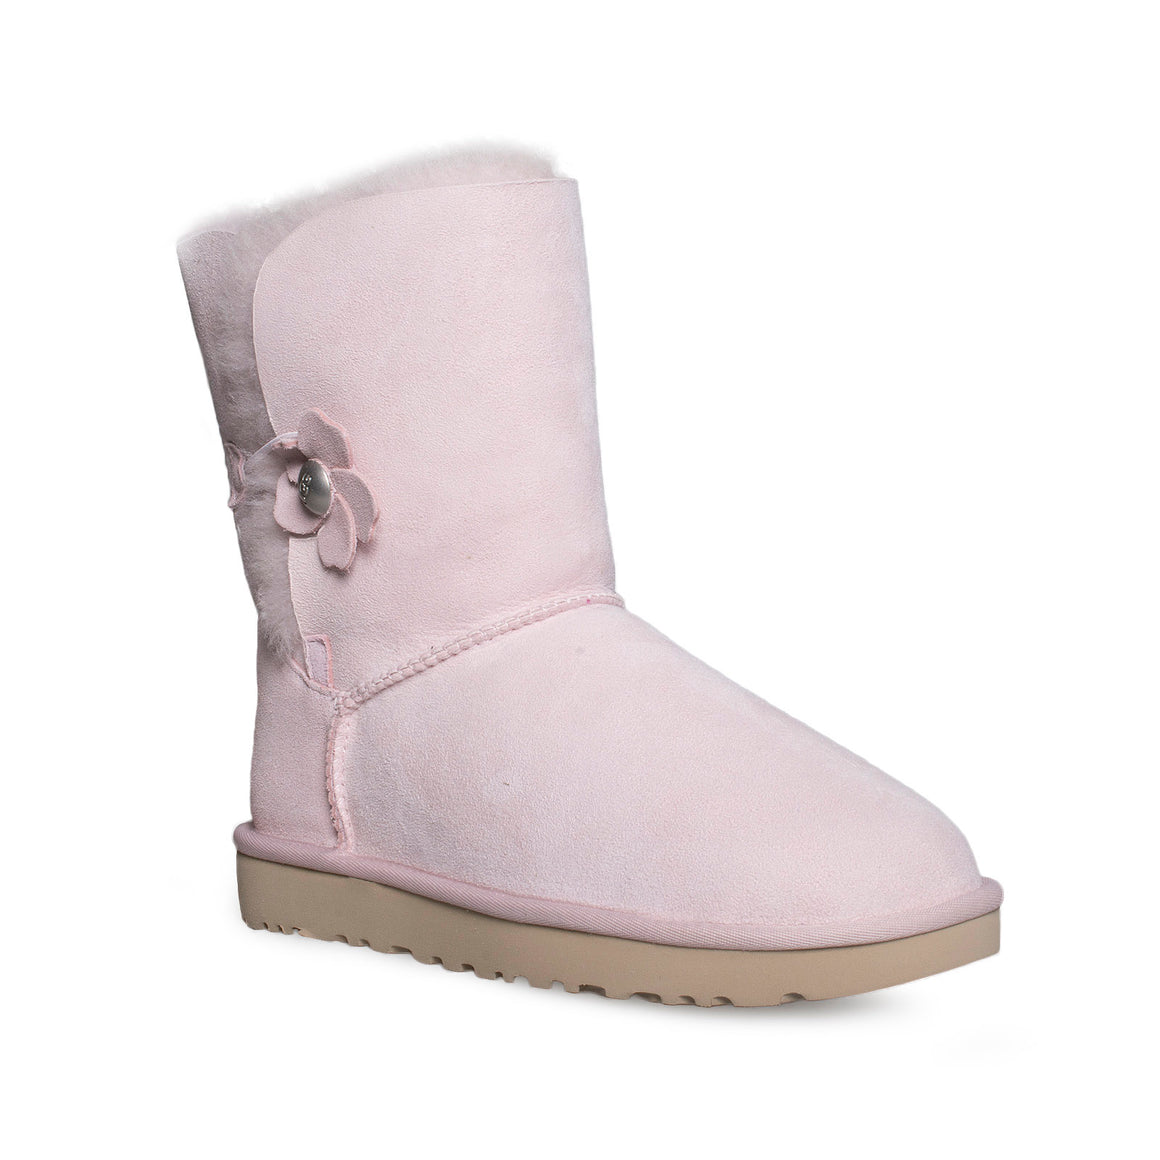 UGG Bailey Button Poppy Seashell Pink Boots - Women's